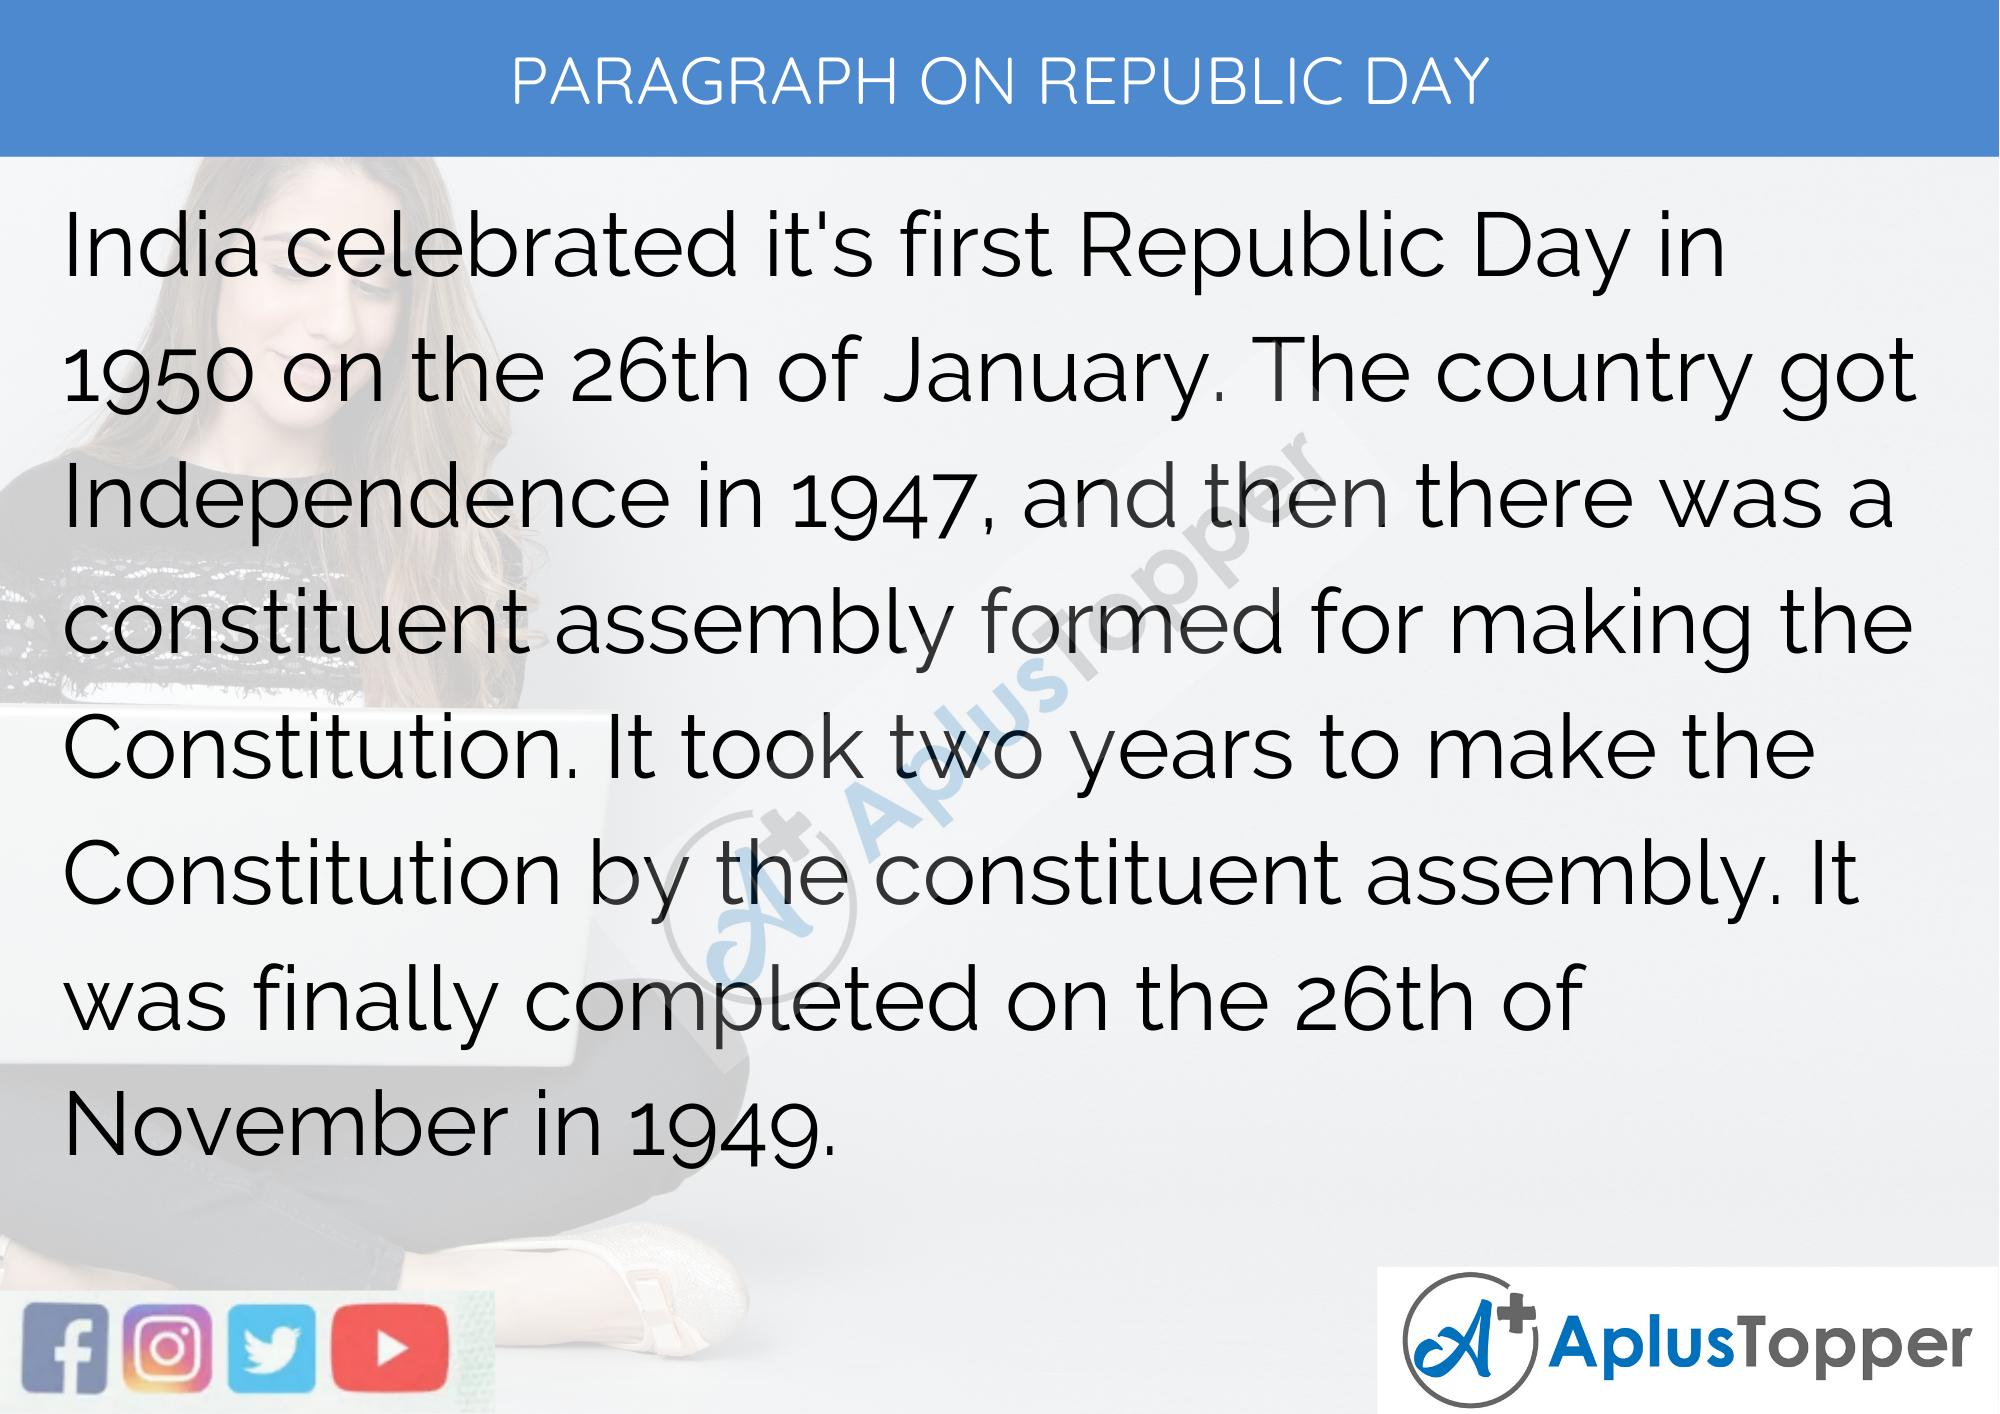 Paragraph on Republic Day - 250 to 300 Words for Classes 9, 10, 11, 12, and Competitive Exam Students